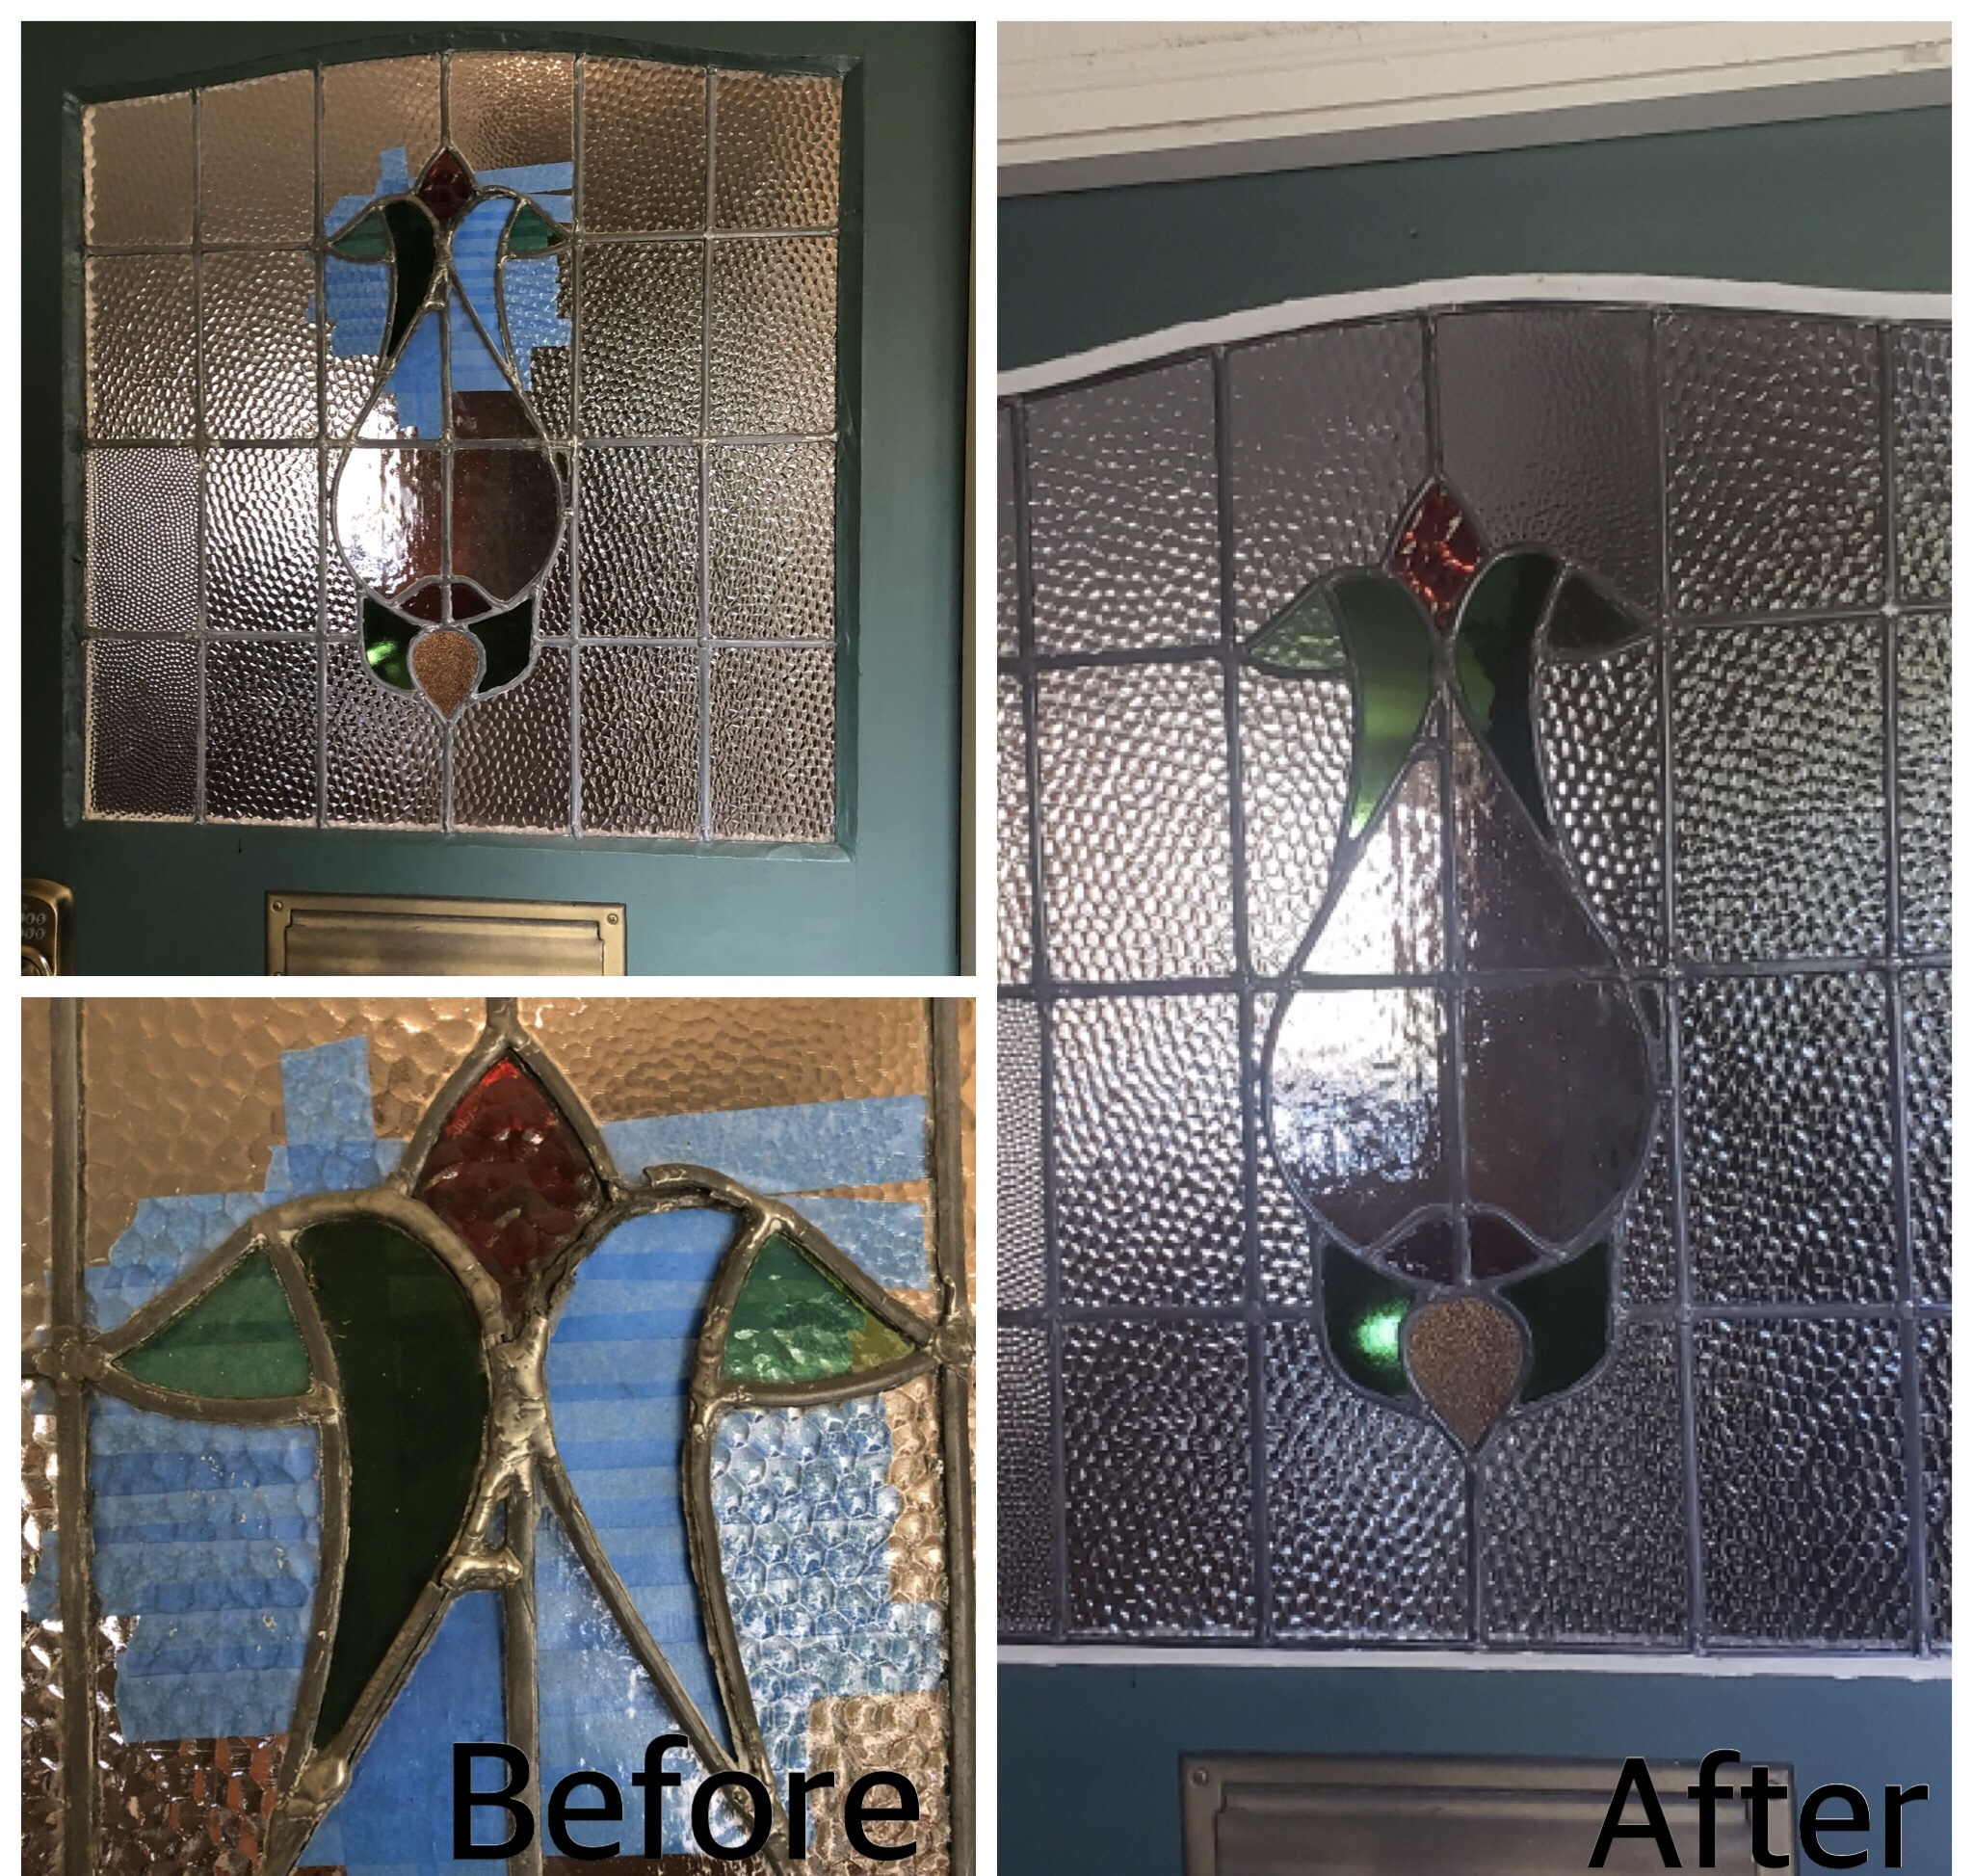 stained glass front door repair before and after bubble glass legacy glass studios california.jpg